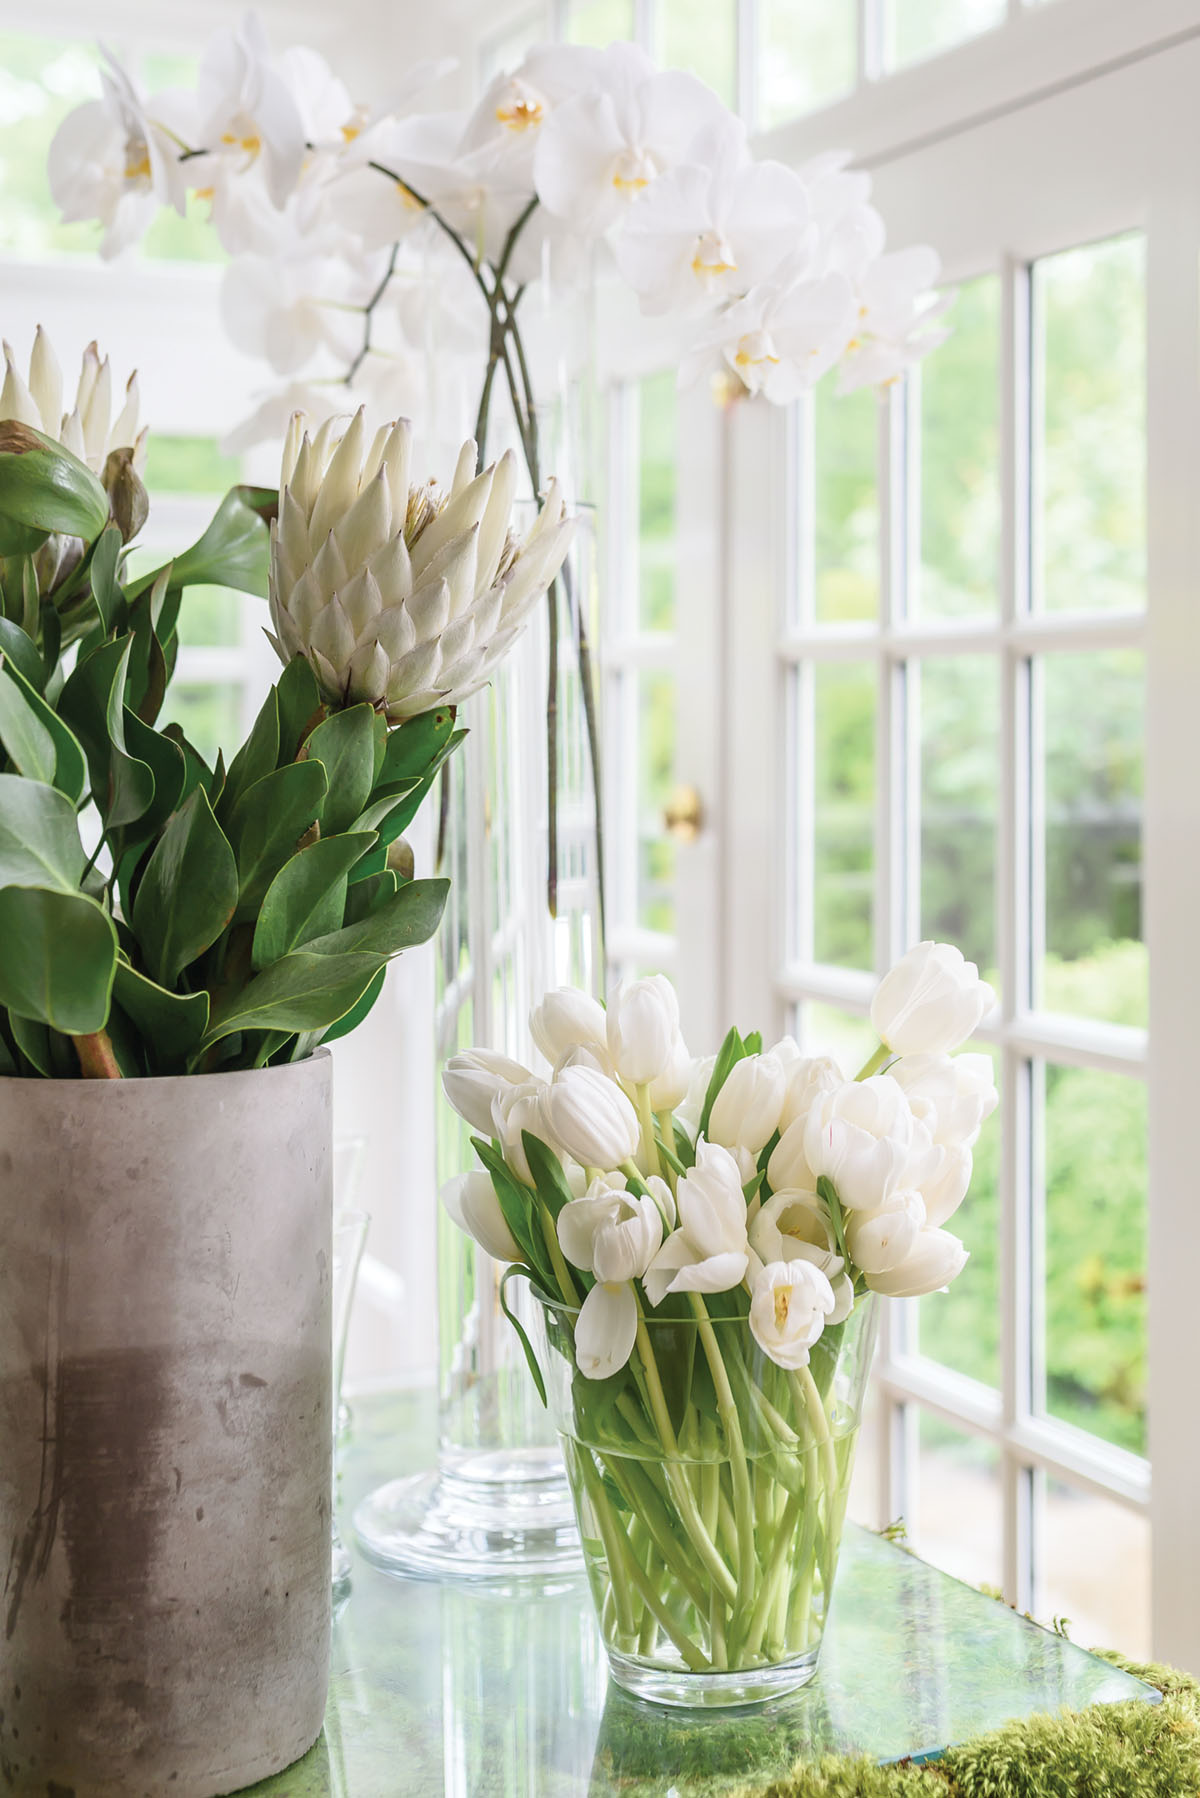 vases of white flowers, arrangement in bunches of a single variety of blooms, including tulips, protea, and orchis